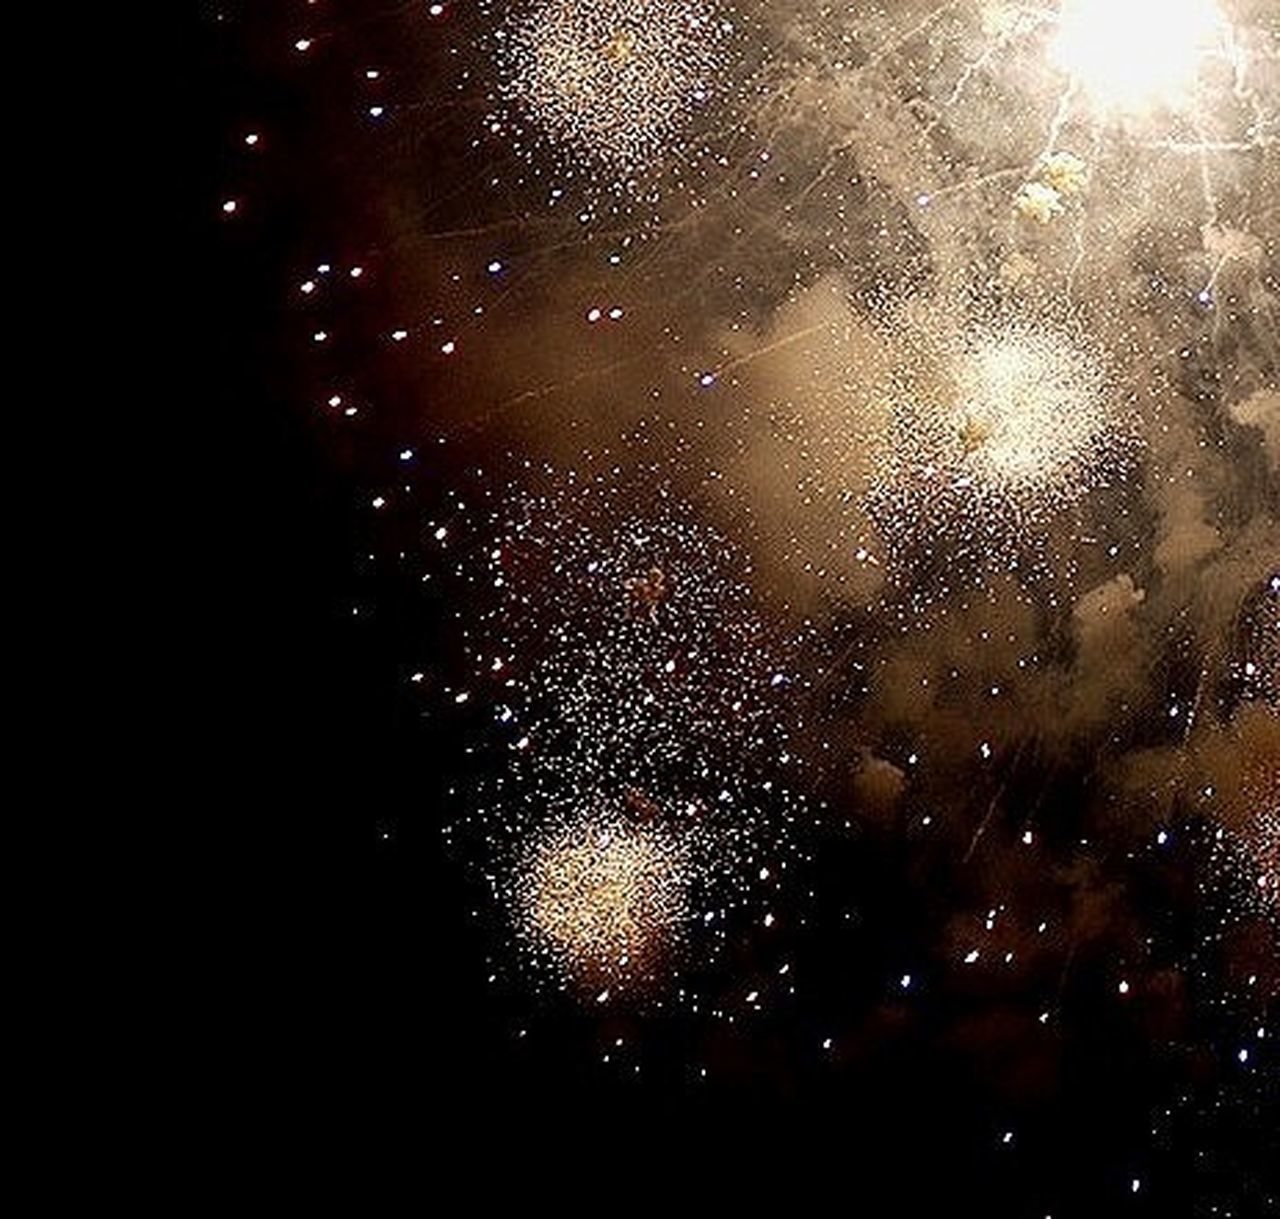 space, star - space, astronomy, night, galaxy, no people, firework display, constellation, milky way, outdoors, sky, close-up, satellite view